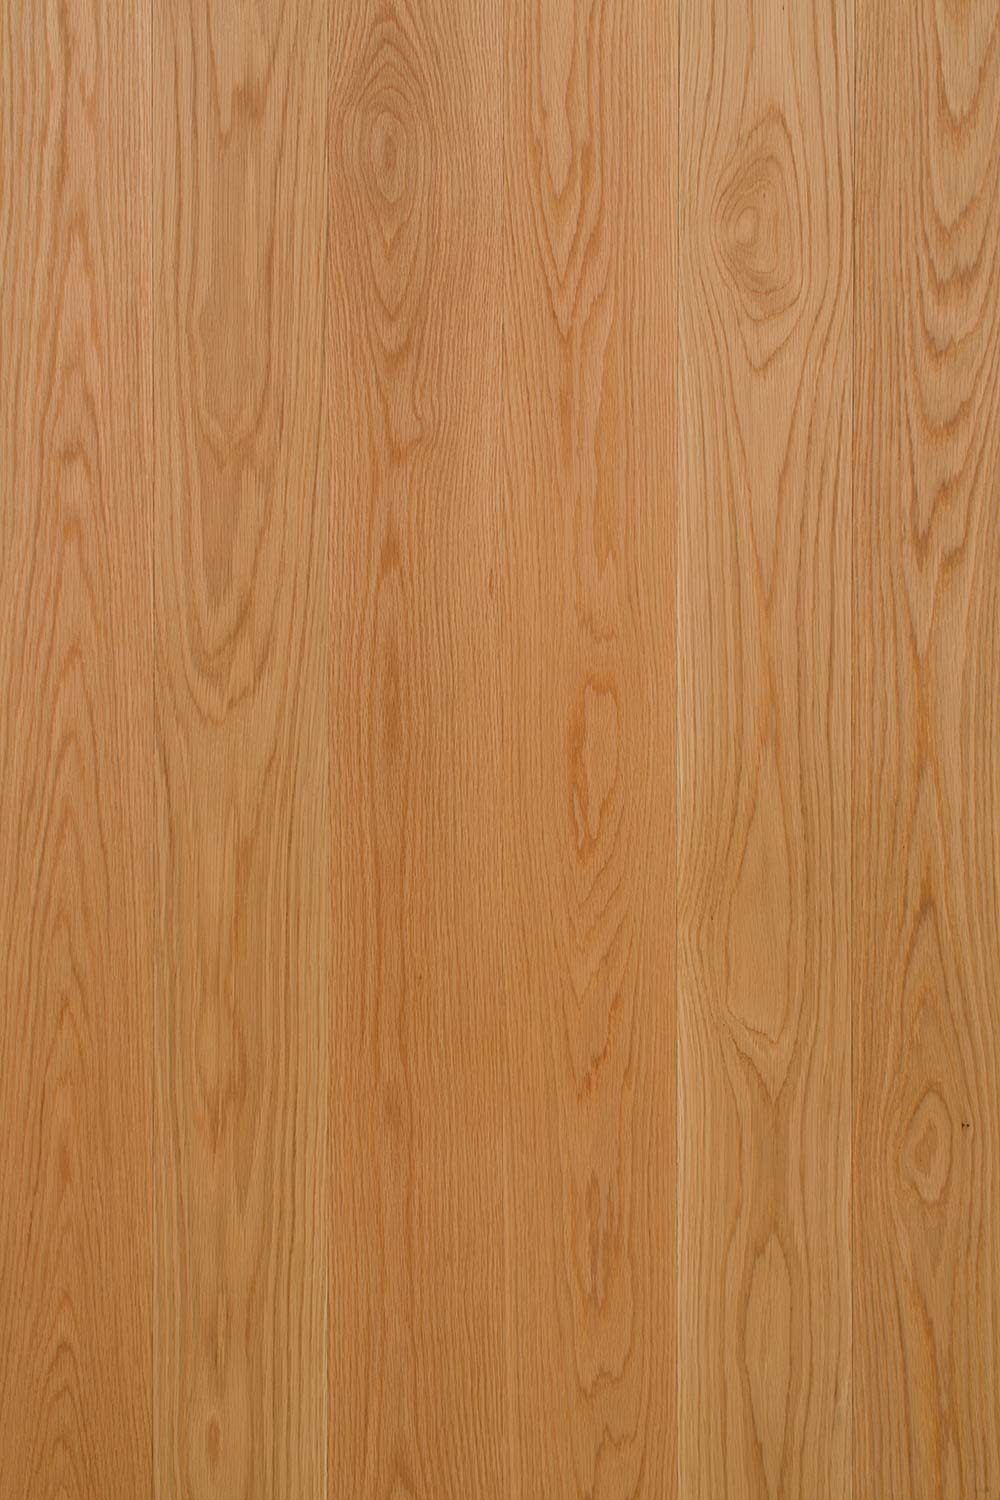 Premium Plain Sawn White Oak